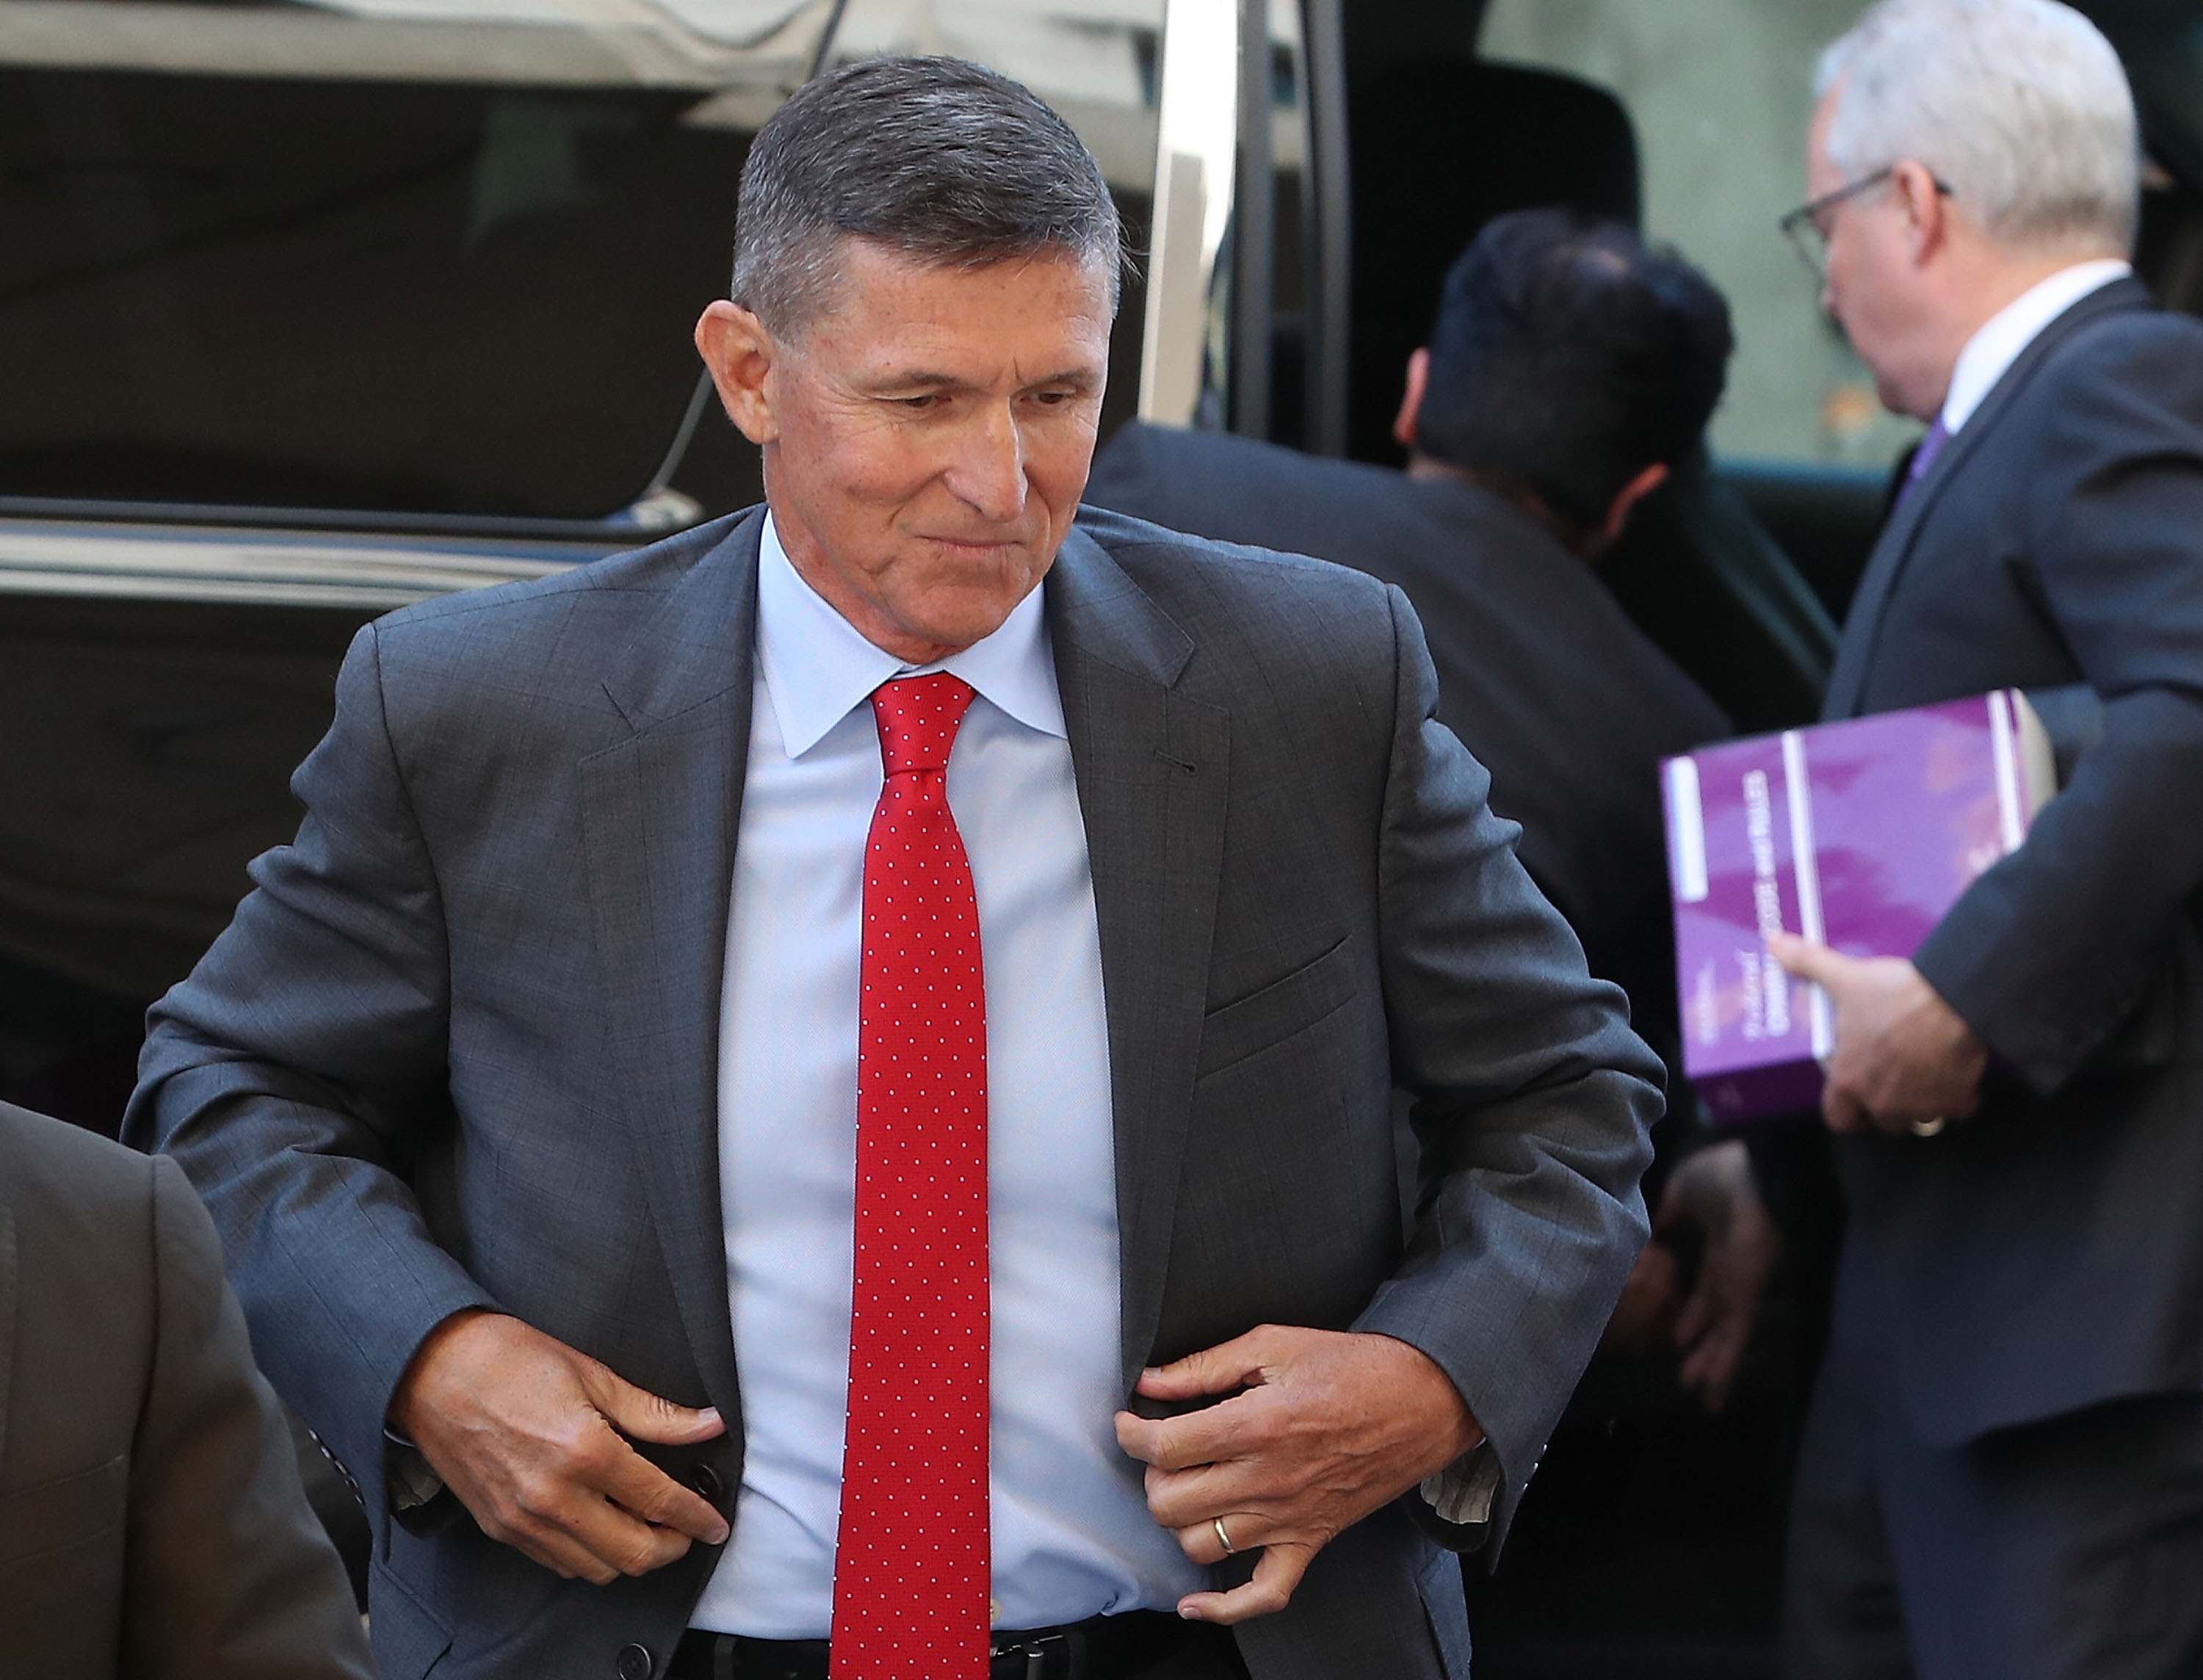 Michael Flynn, former national security advisor to President Donald Trump, arrives at the E. Barrett Prettyman Federal Courthouse for a status hearing July 10, 2018 in Washington, DC. (Mark Wilson/Getty Images)